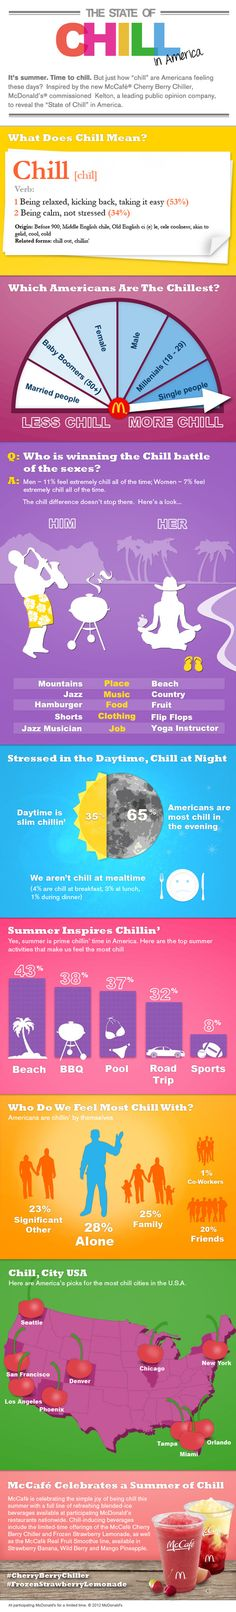 The State of Chill in America[INFOGRAPHIC]